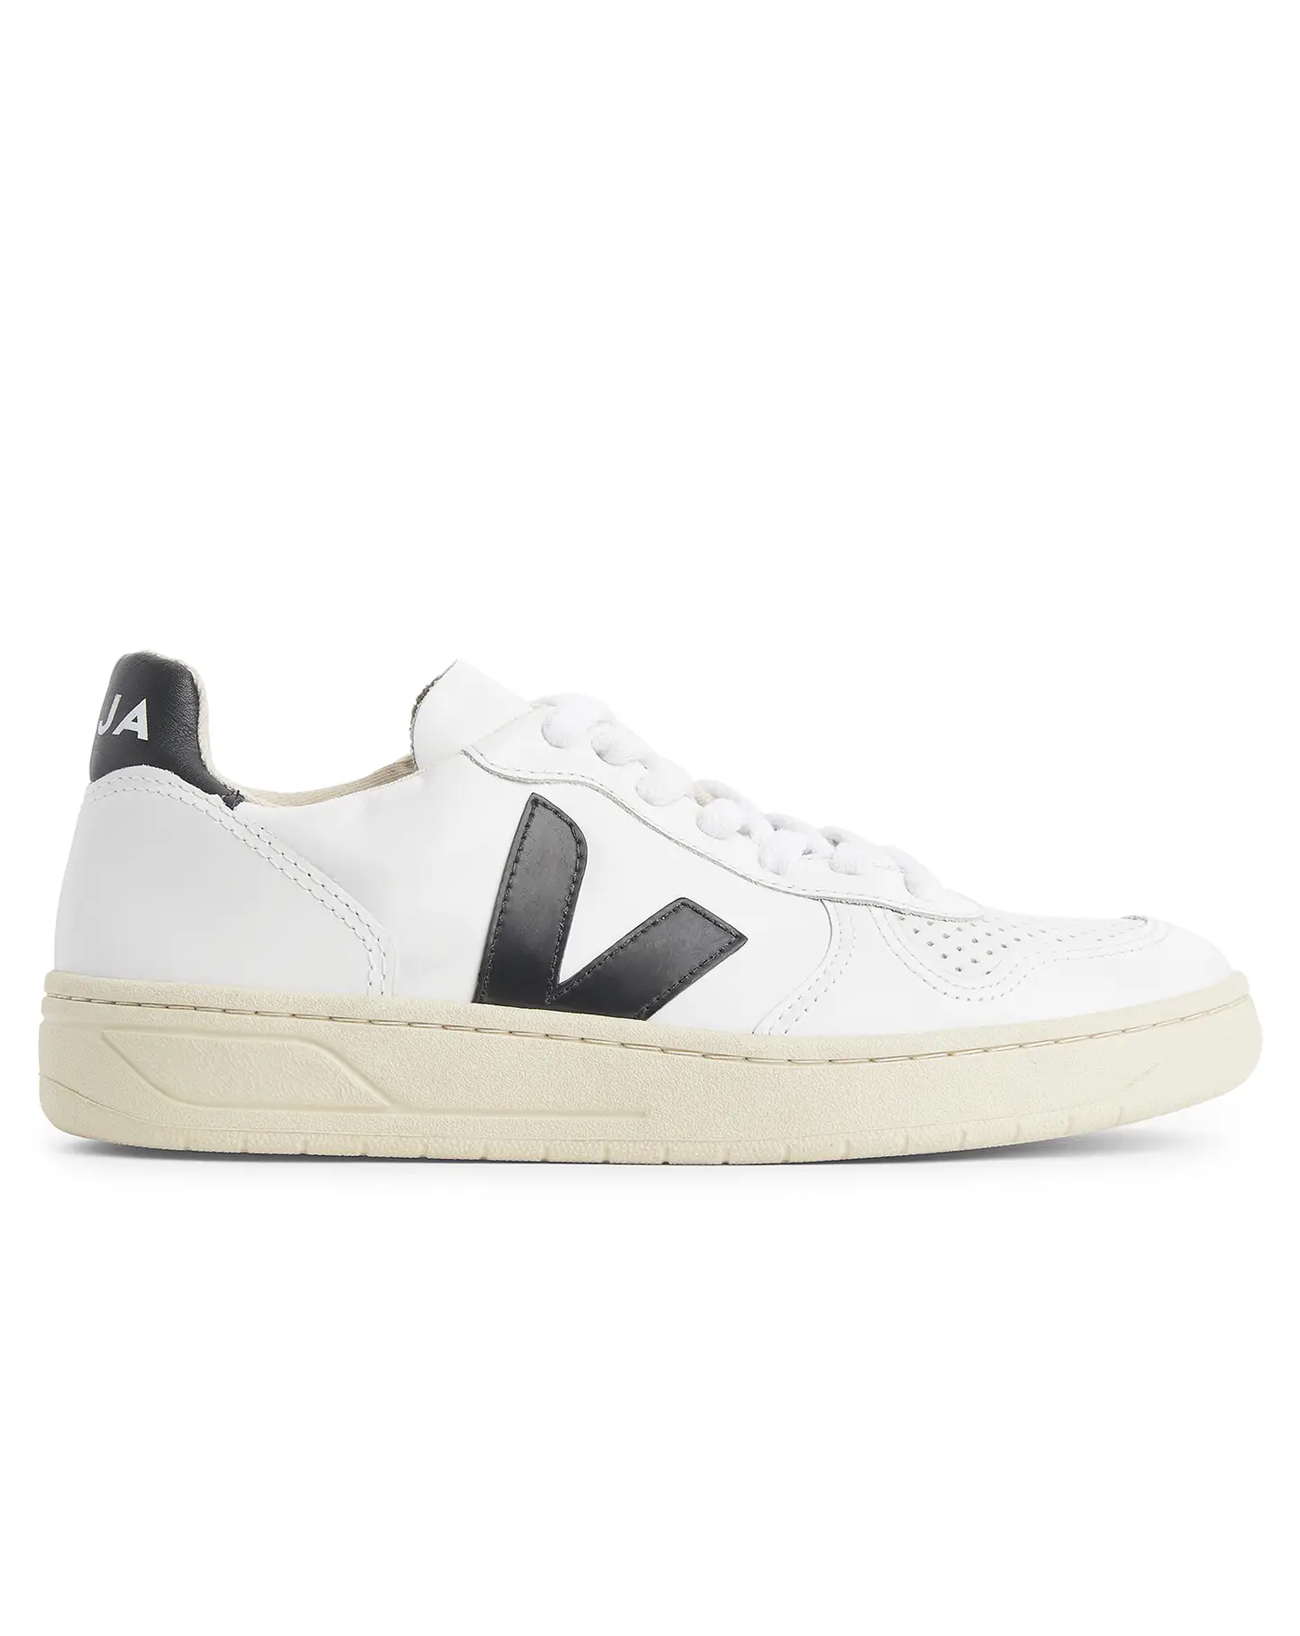 sneakers trends for autumn 2021